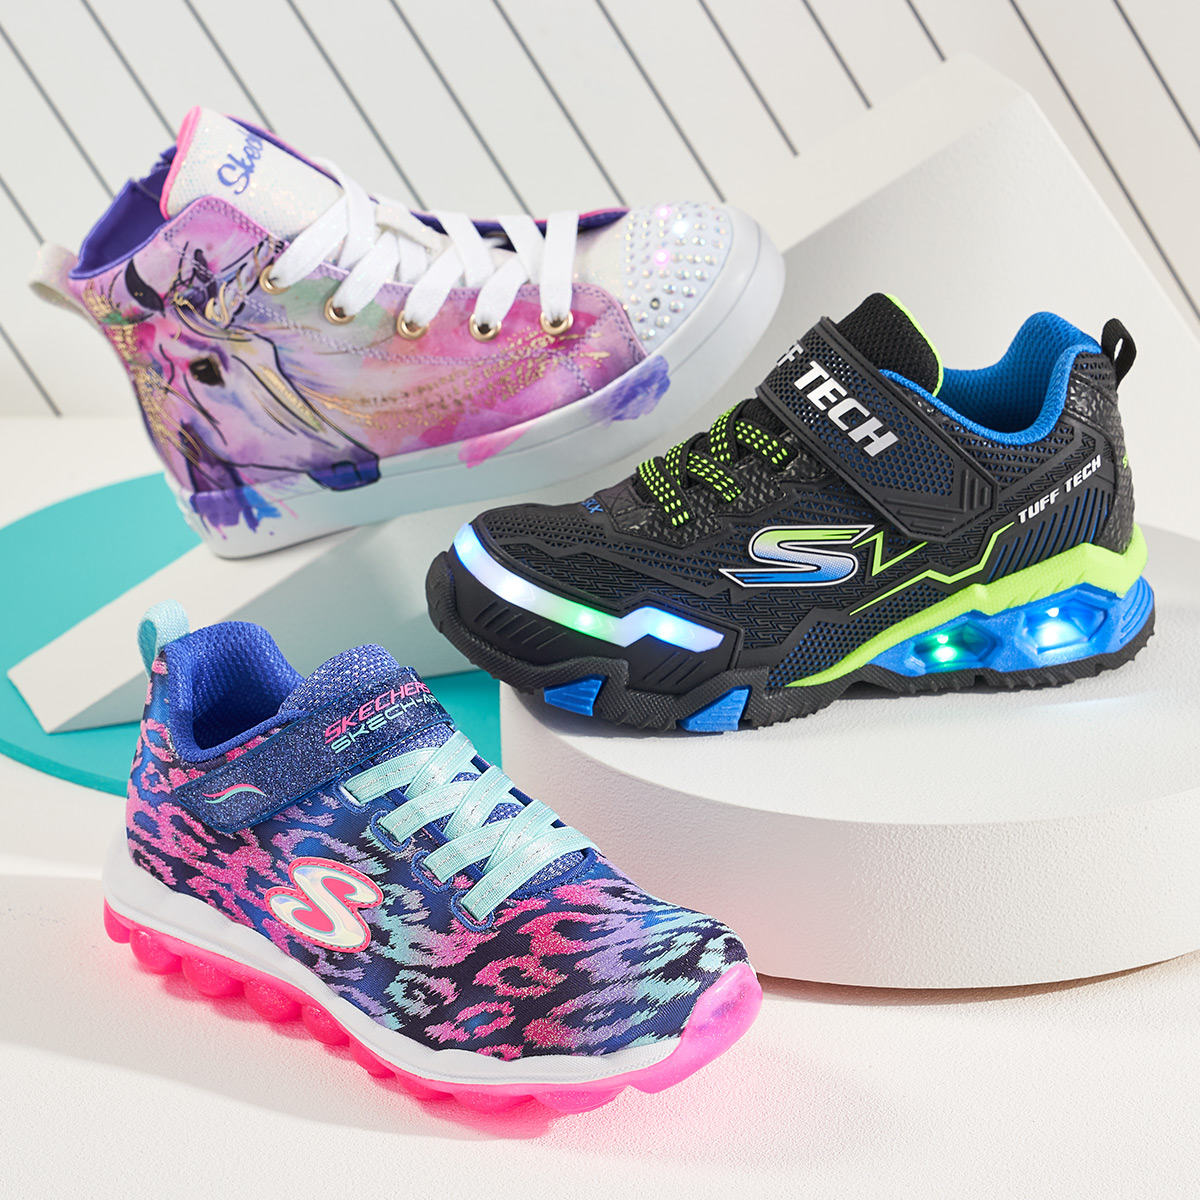 assorted kids colorful skecher sneakers